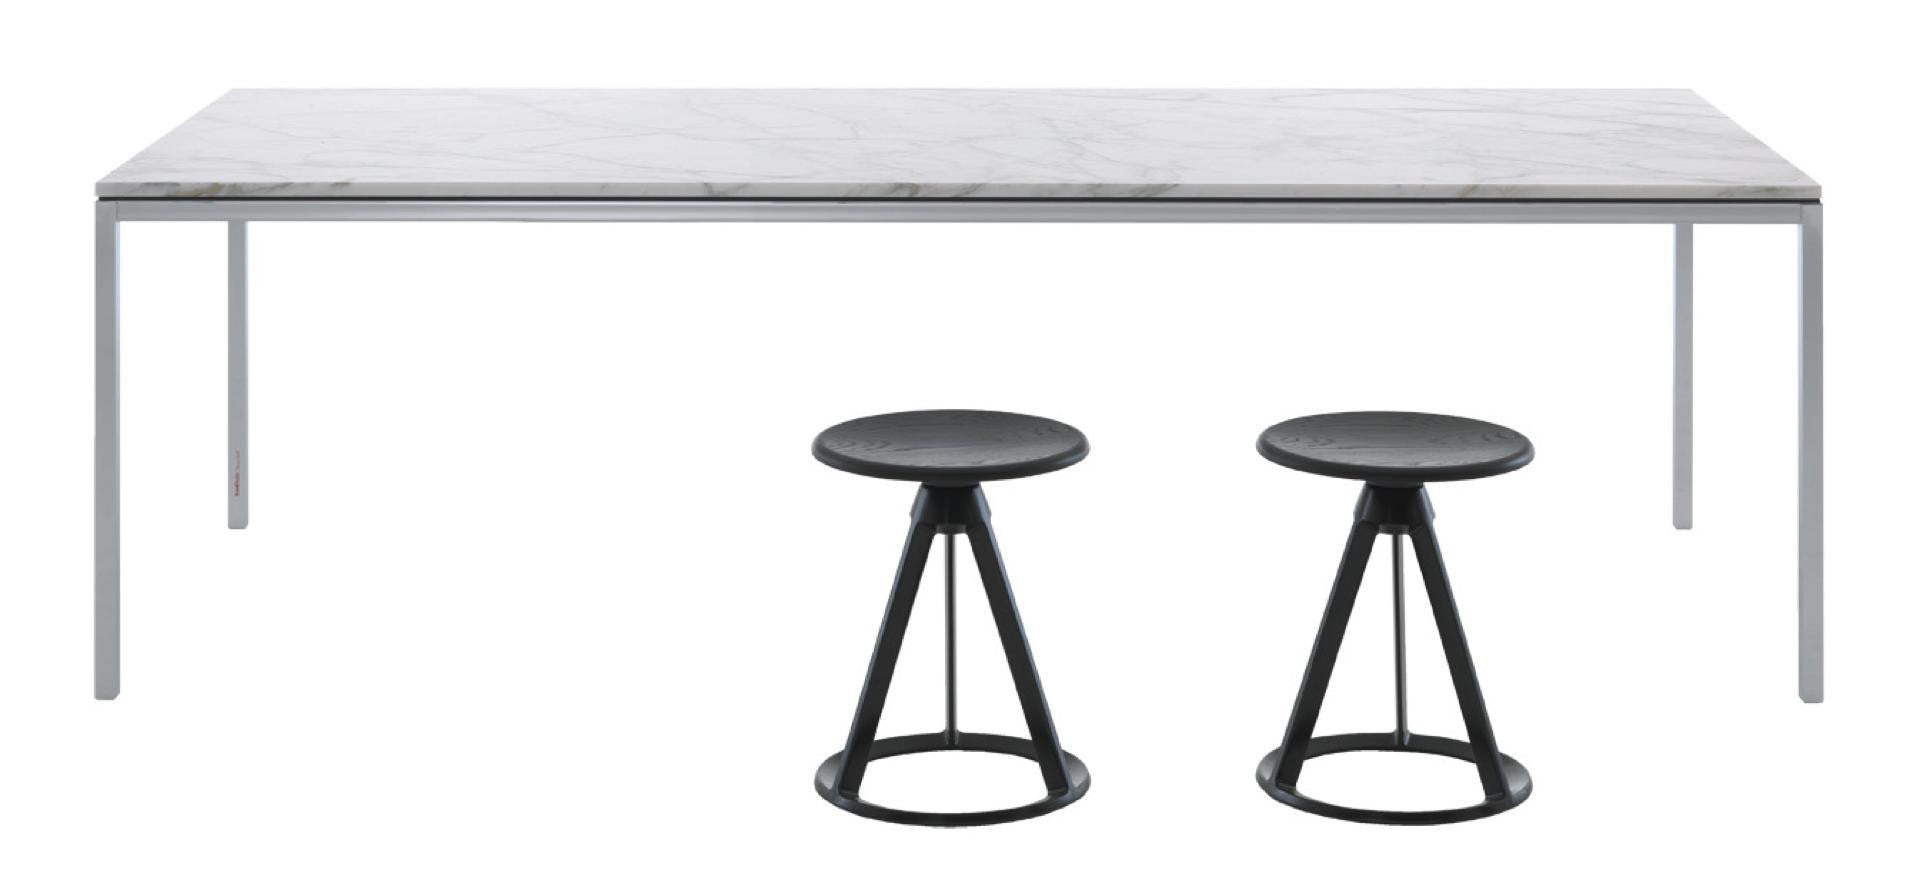 pipe bar x with frame legs table for kit products shape desk pack h l suitable base cross